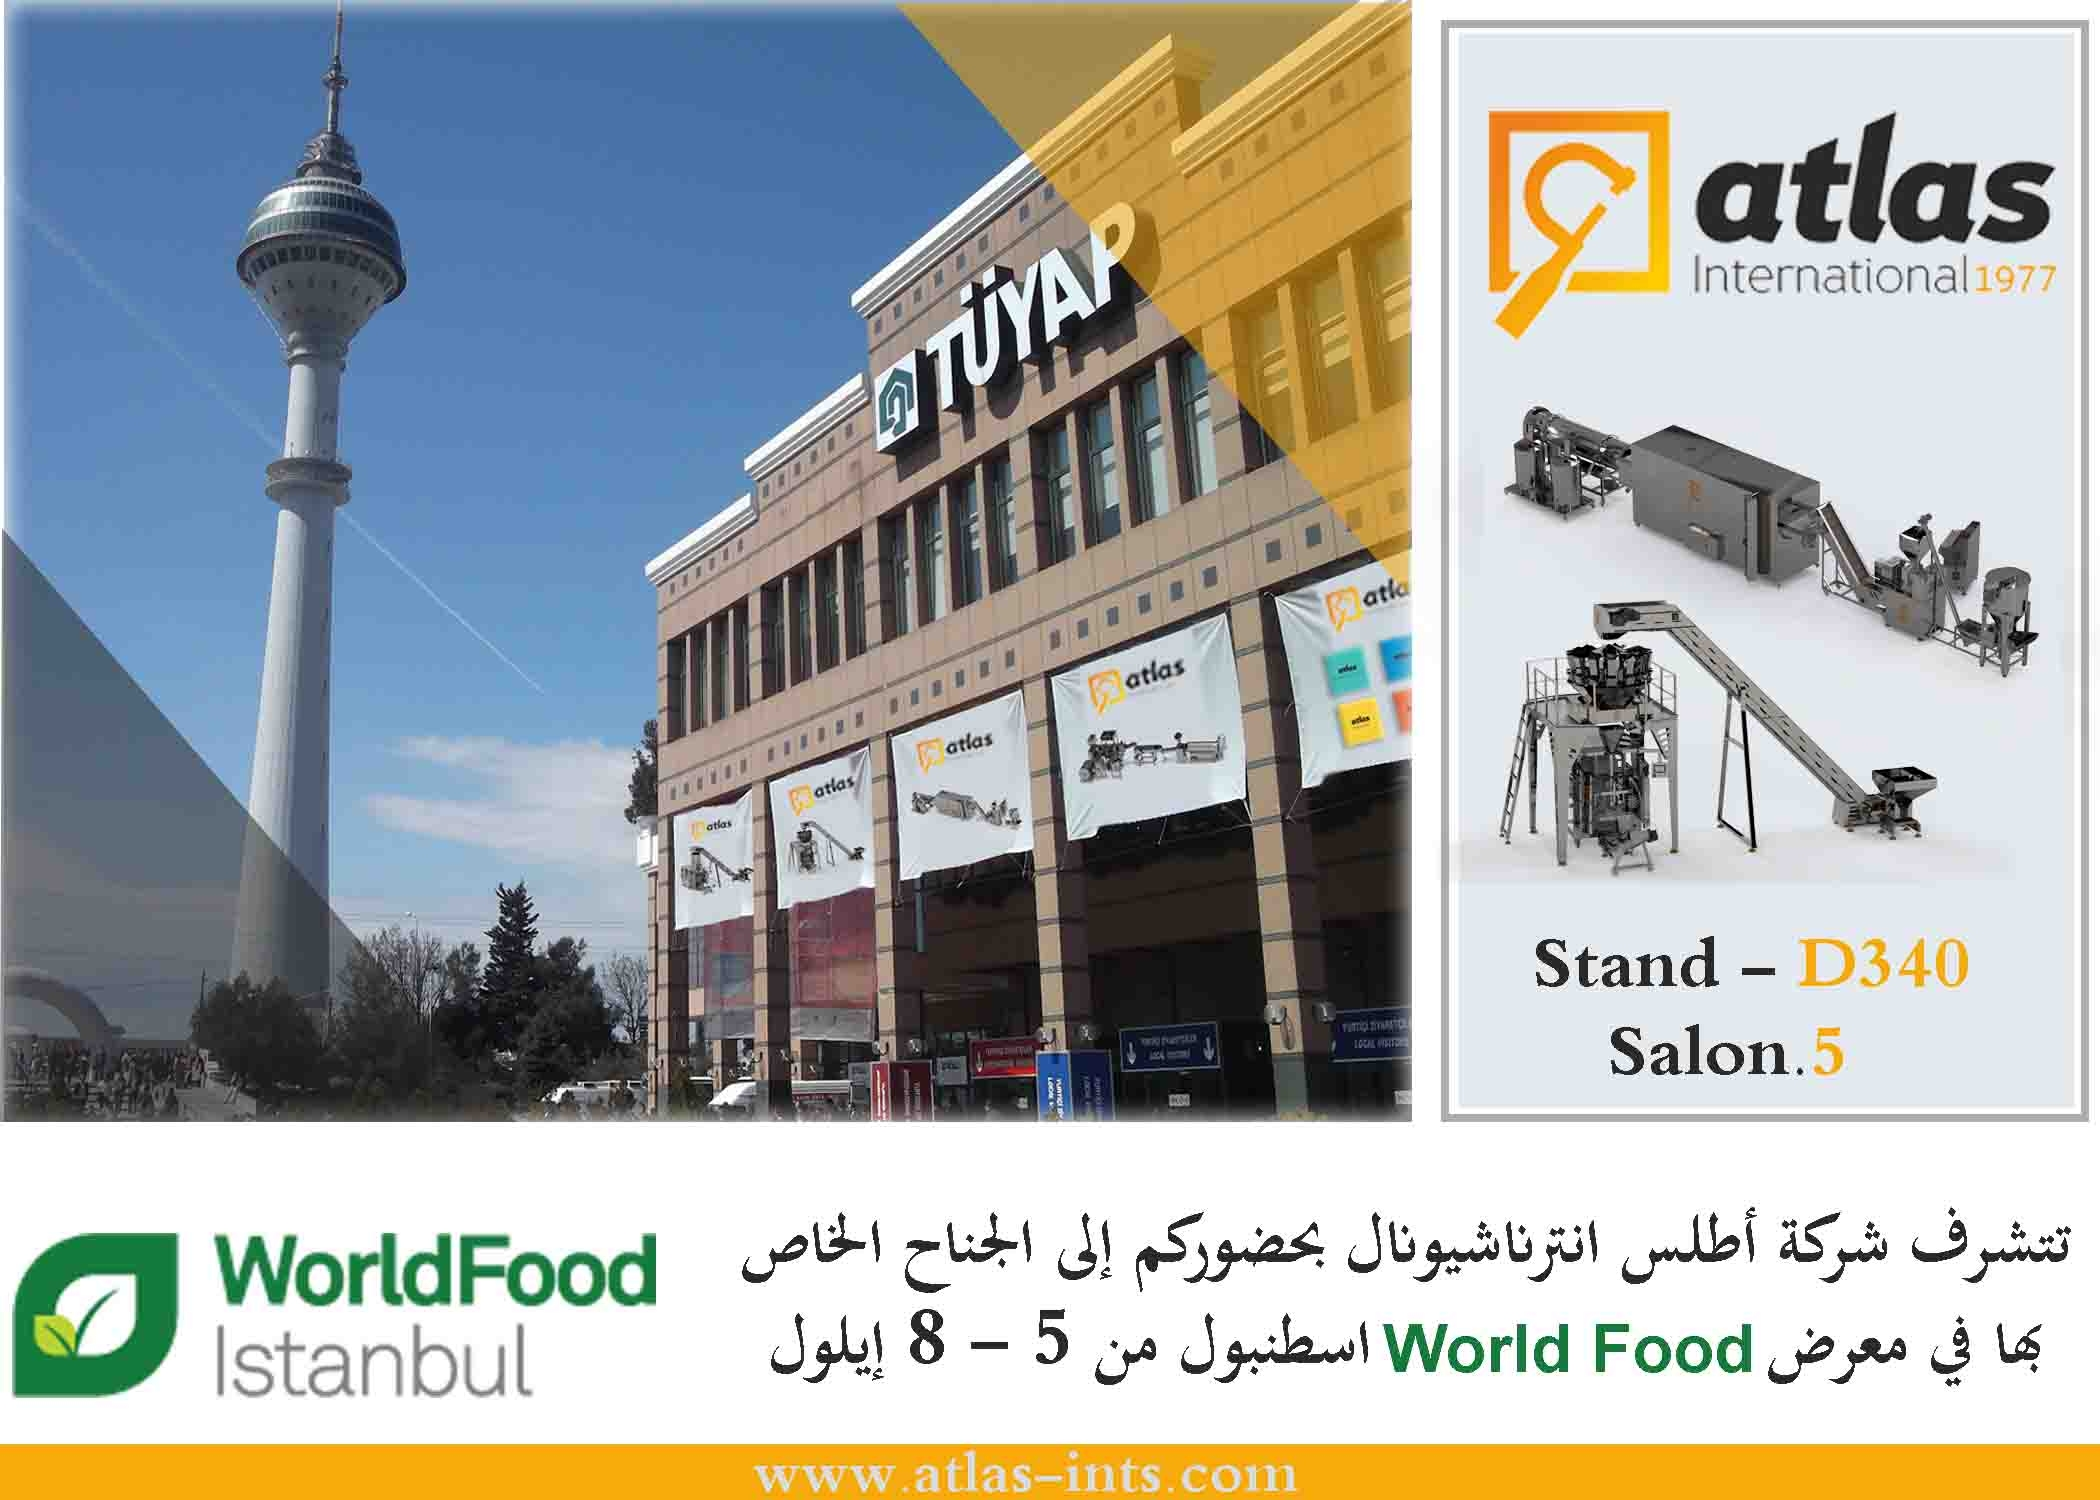 معرض World Food اسطنبول